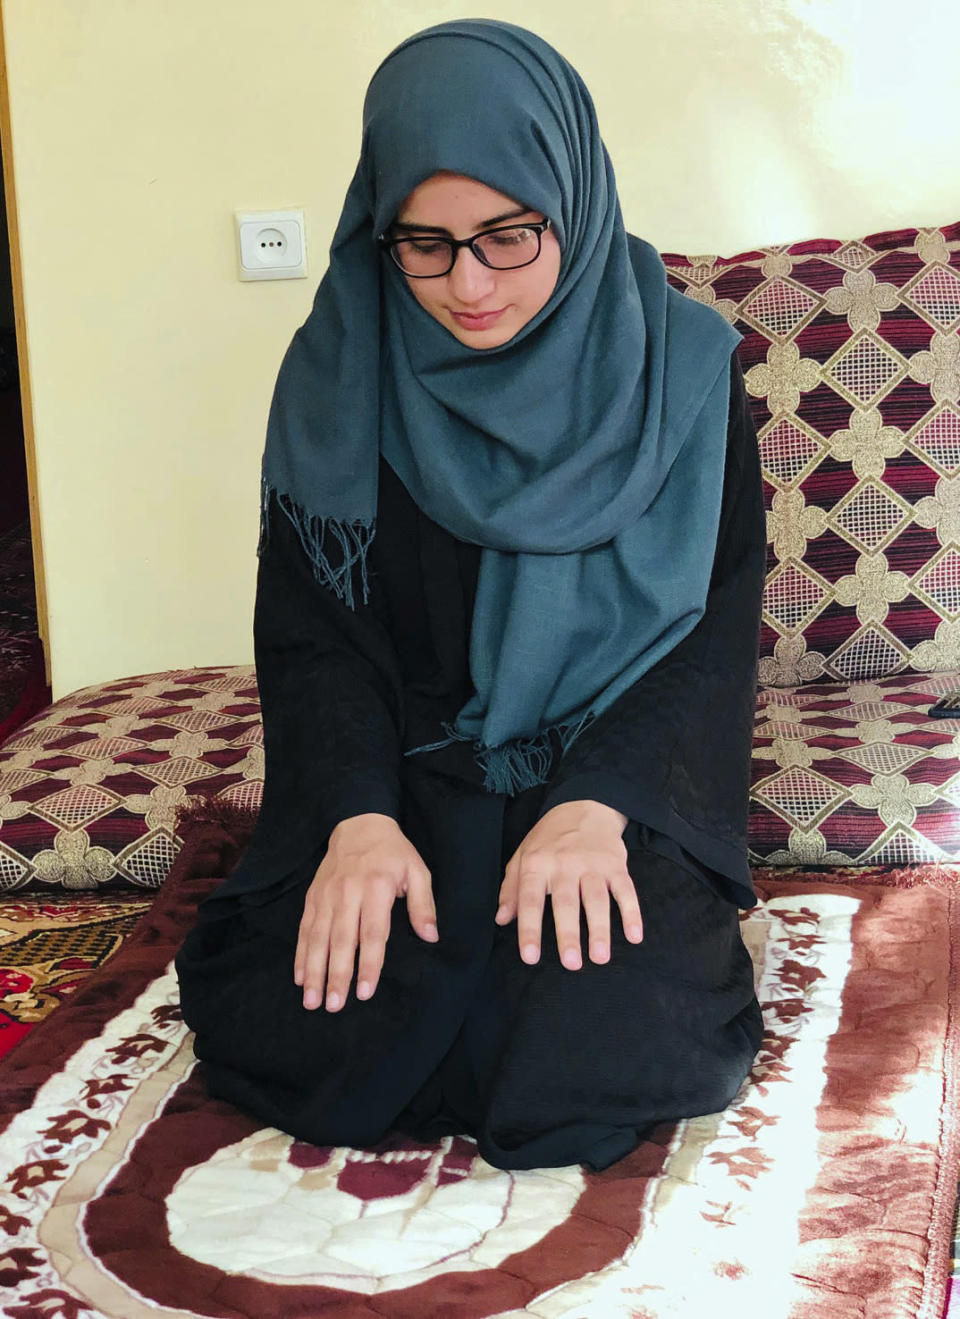 Salgy Baran, 18, who received the highest the highest score in the entire country on Afghanistan's university entrance exams this year, prays inside her home in Kabul, Afghanistan, Thursday, Aug. 26, 2021. Baran wants to stay in the country and become a doctor. But as with so many other Afghans, those plans were thrown into doubt when the Taliban rolled into the capital of Kabul earlier this month. (AP Photo/Nillab Burhan)